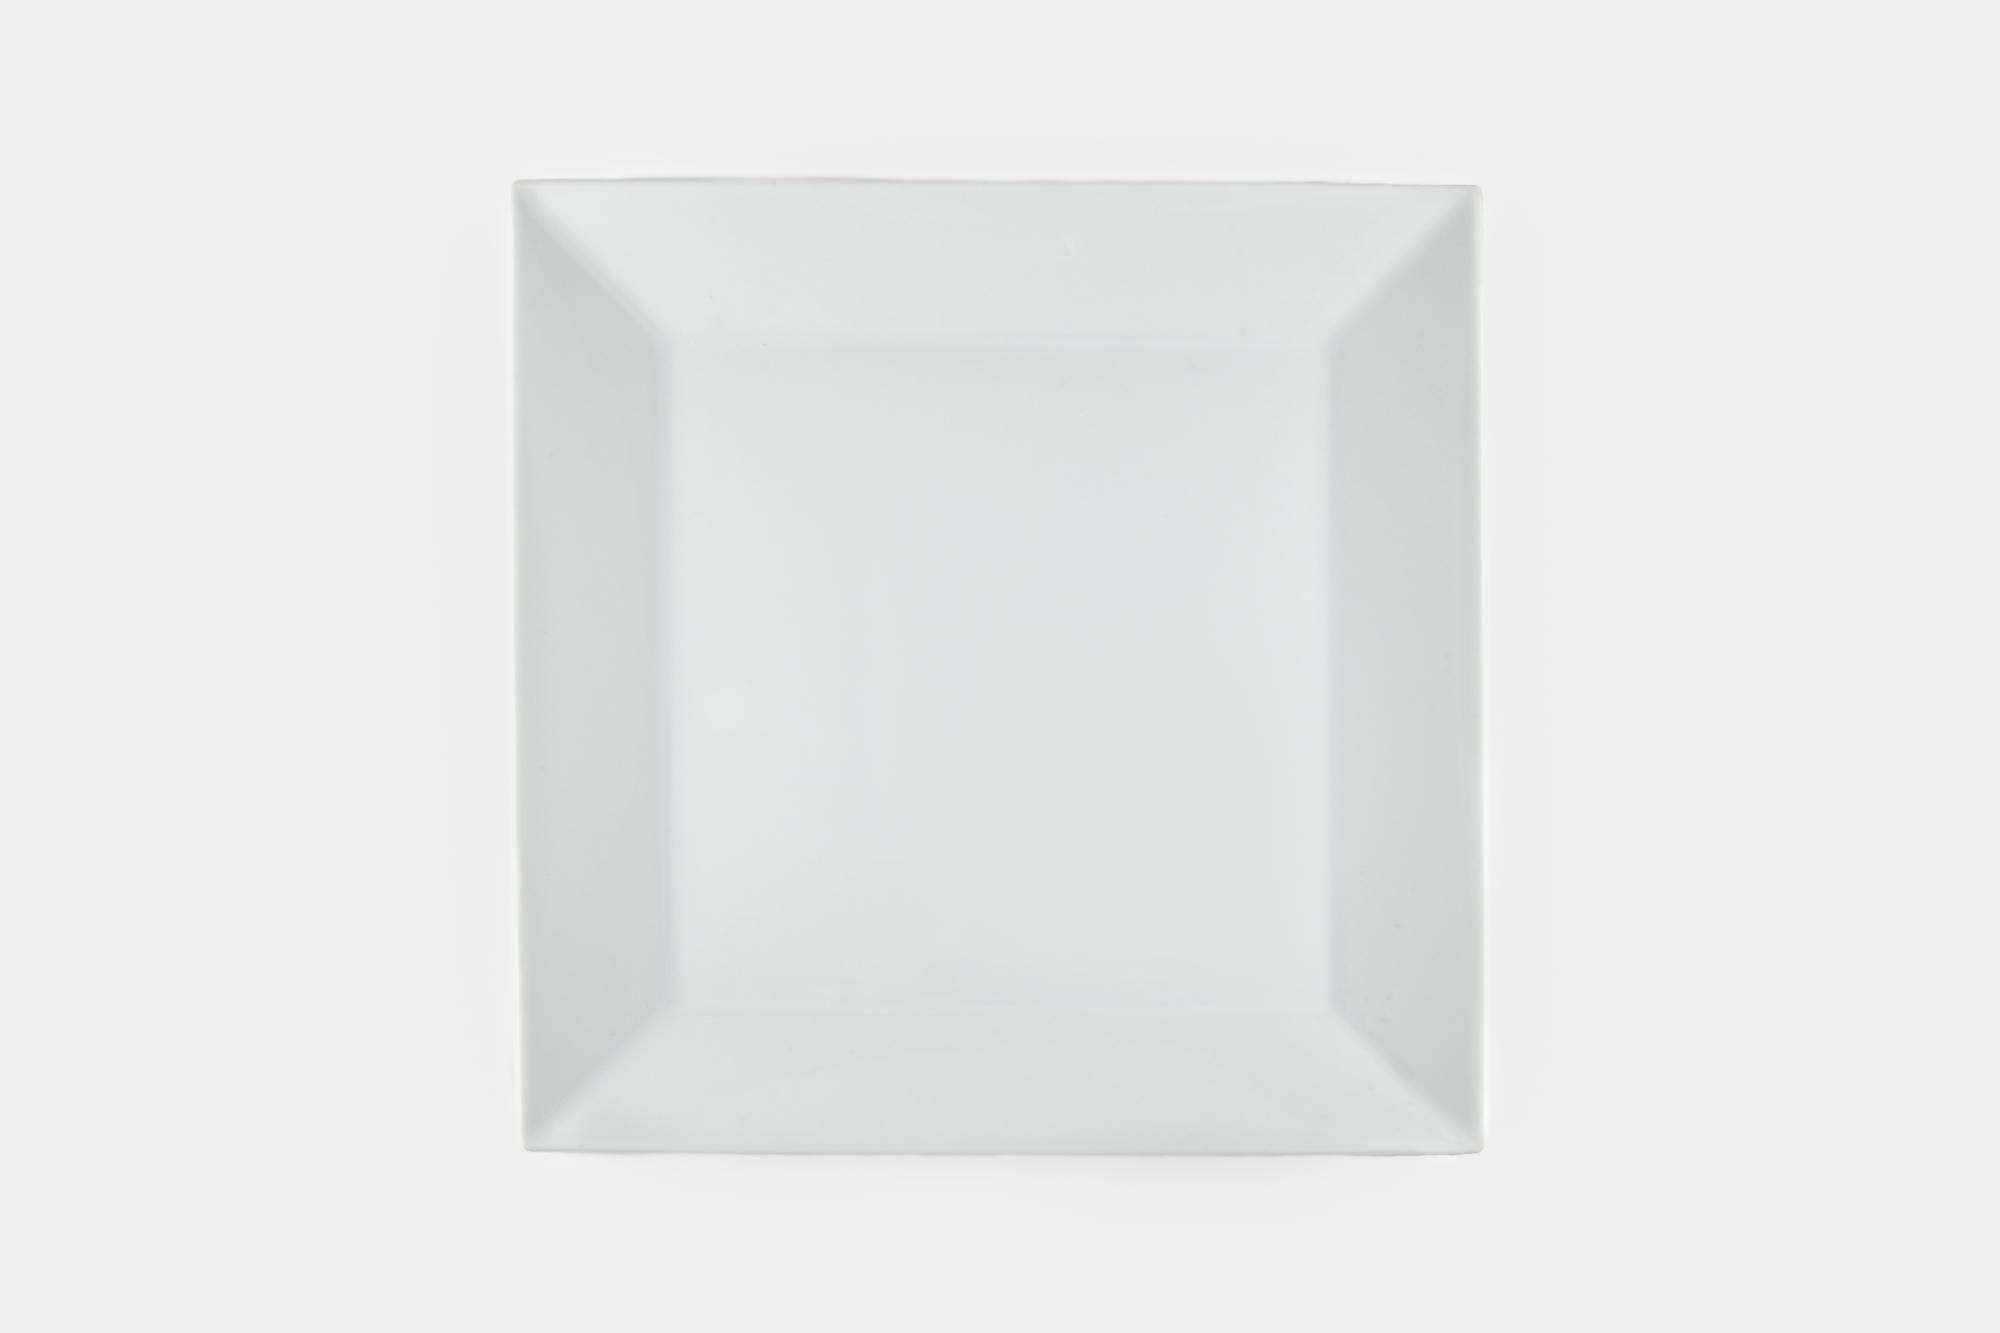 Square plate set - Image 2